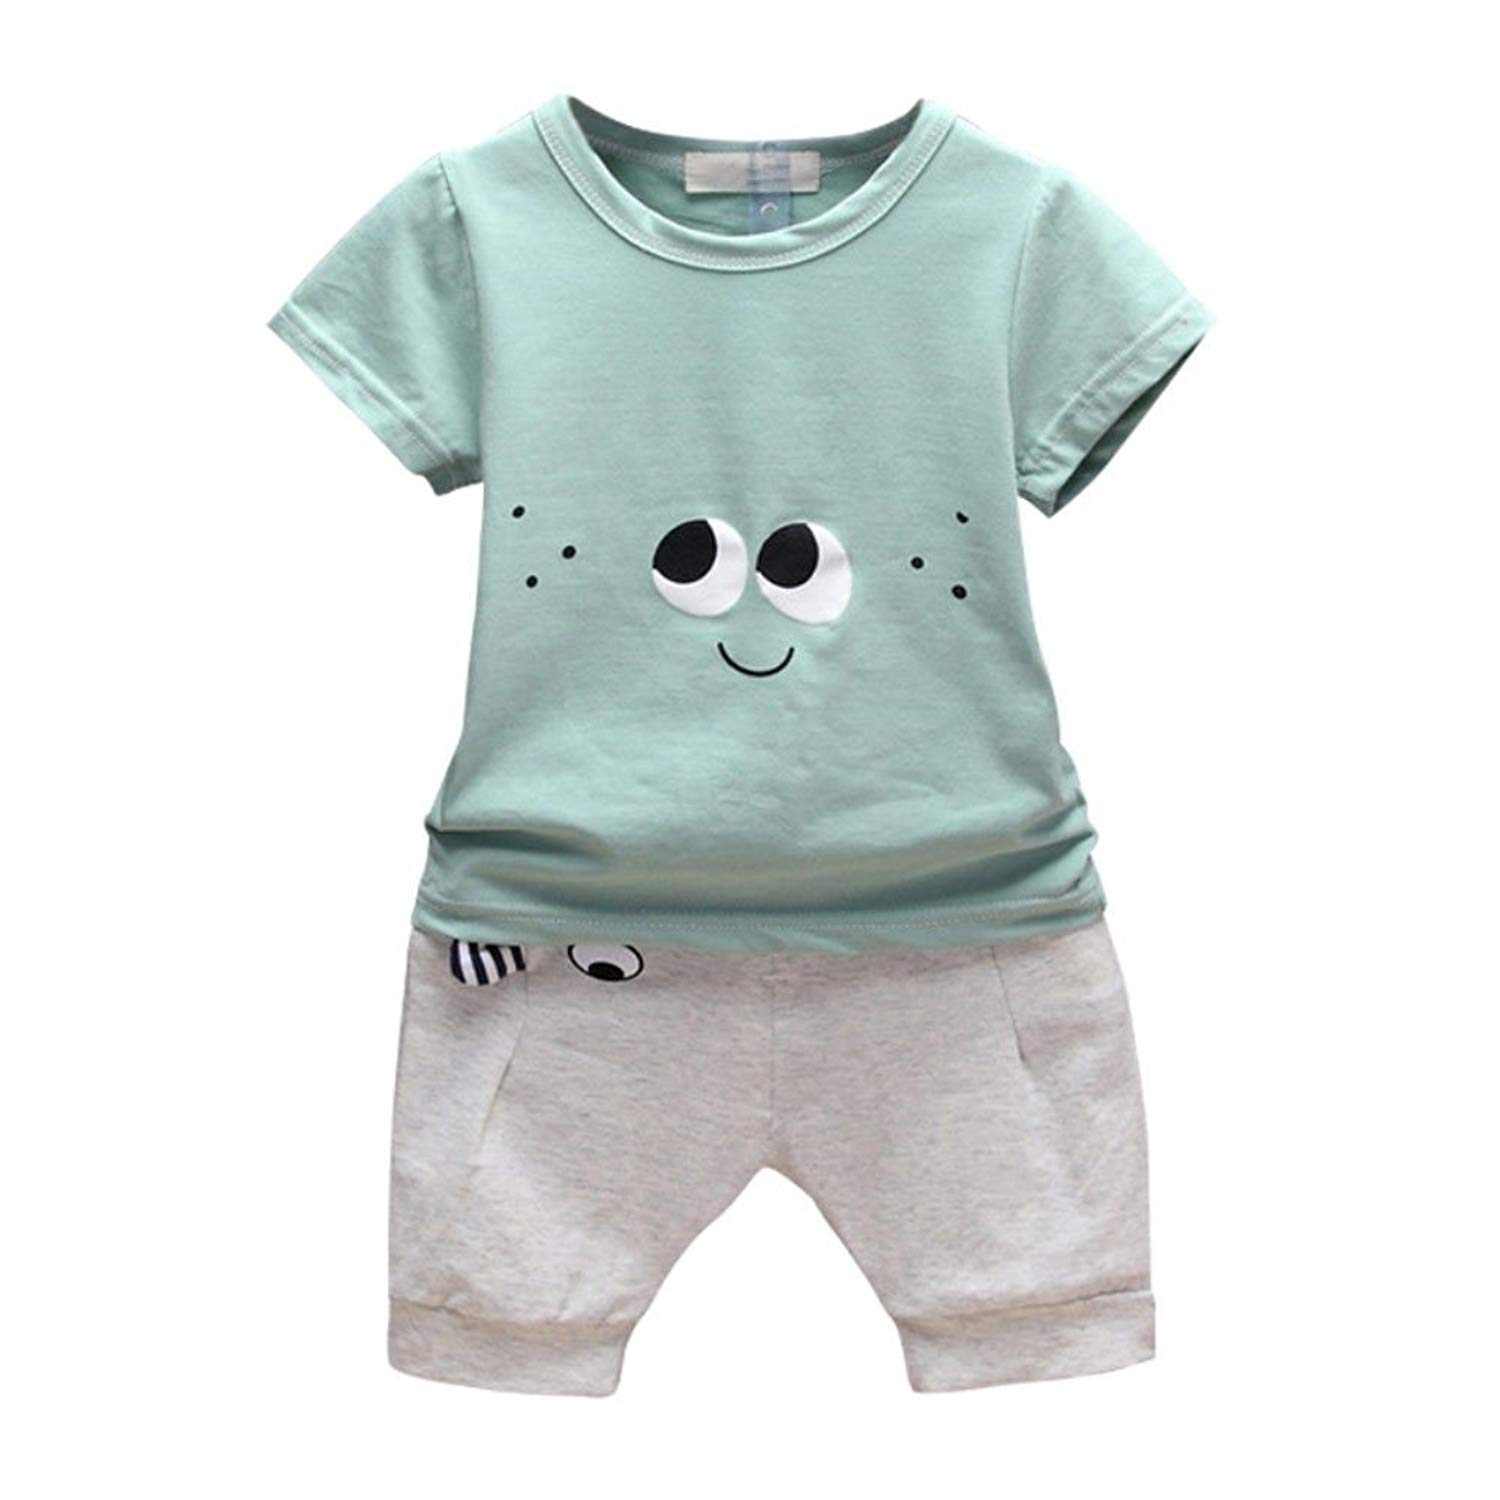 23f24679795 Get Quotations · MiyaSudy Toddler Baby Boy Clothes Summer Sets T-Shirt Tops  + Short Fashion Outfits For